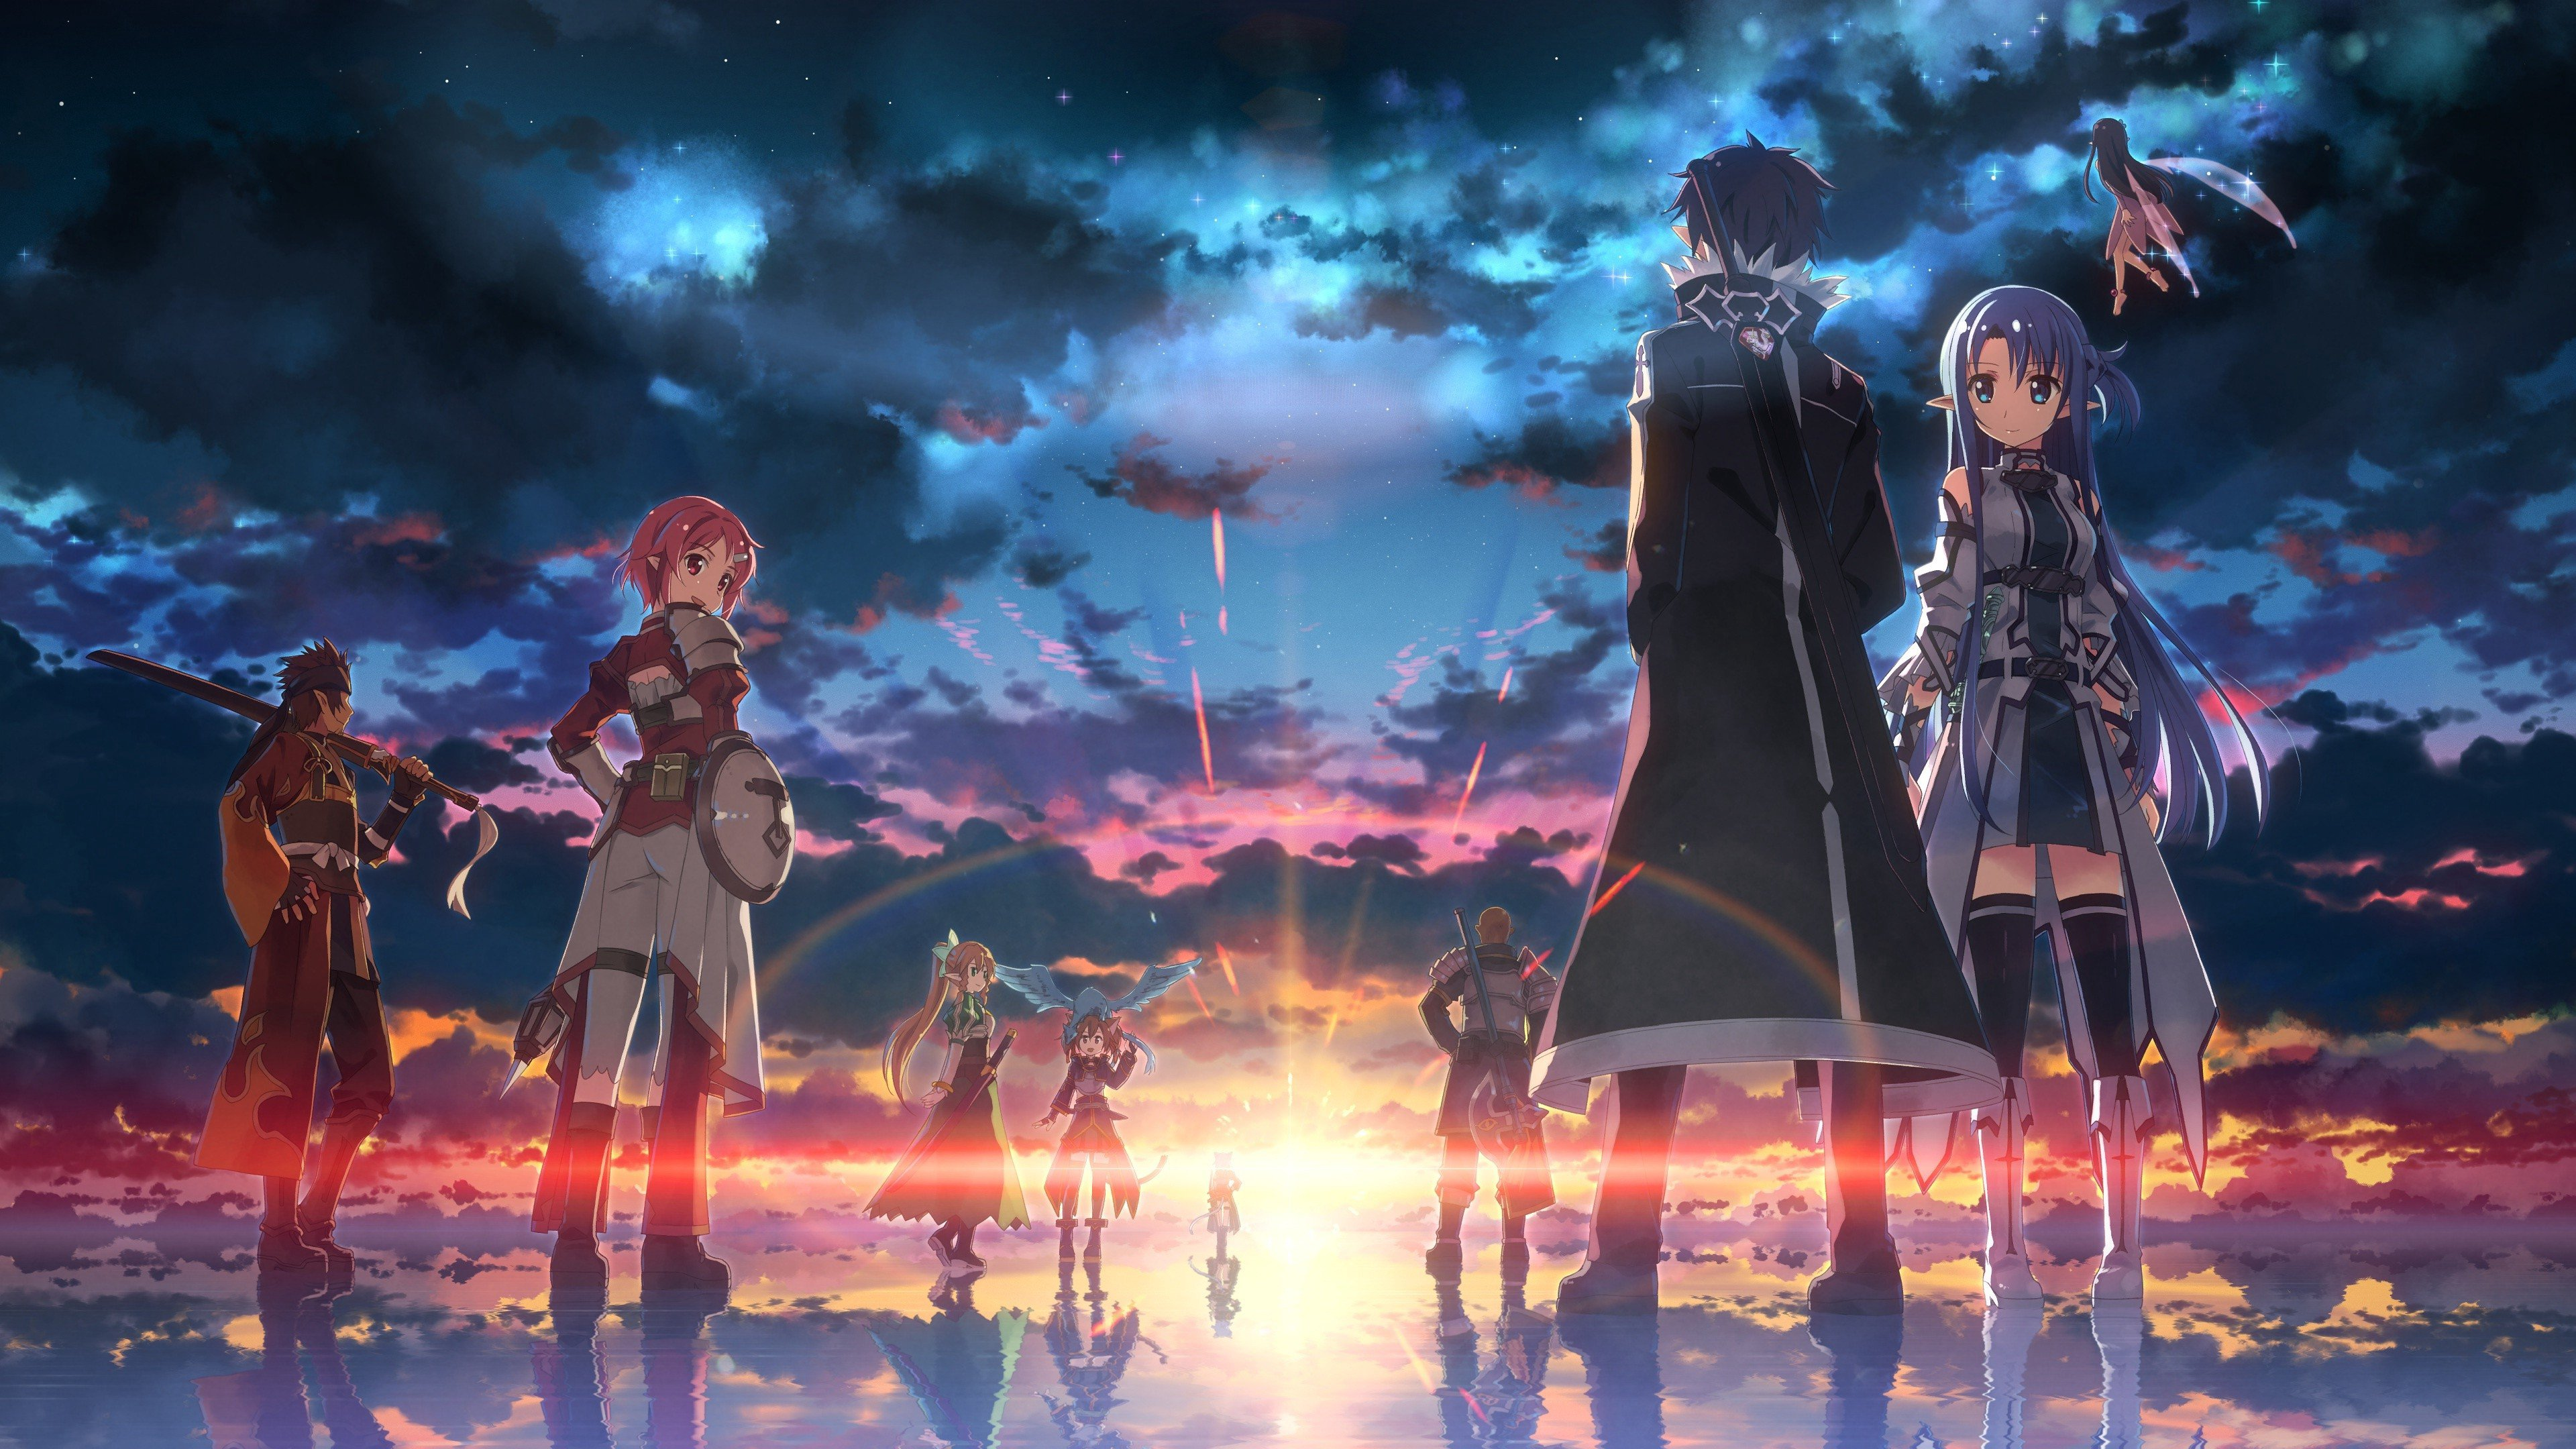 sword art hd games 4k wallpapers images backgrounds photos and